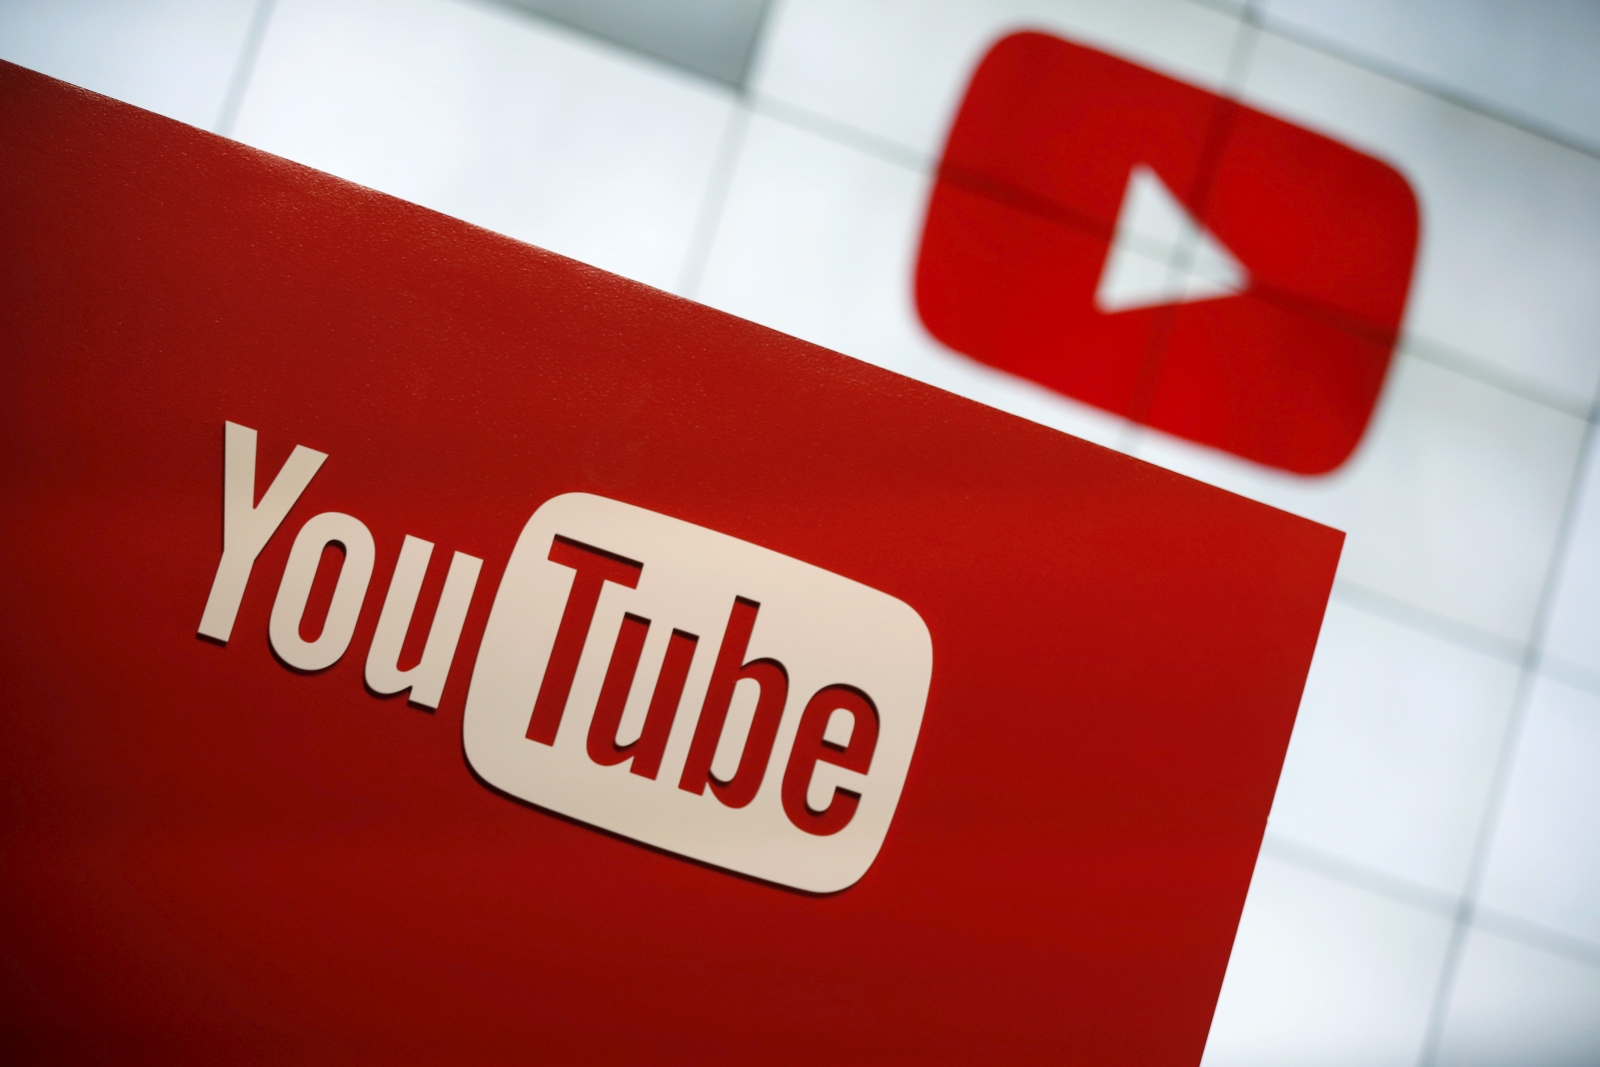 YouTube glitch causes subscribers to decrease